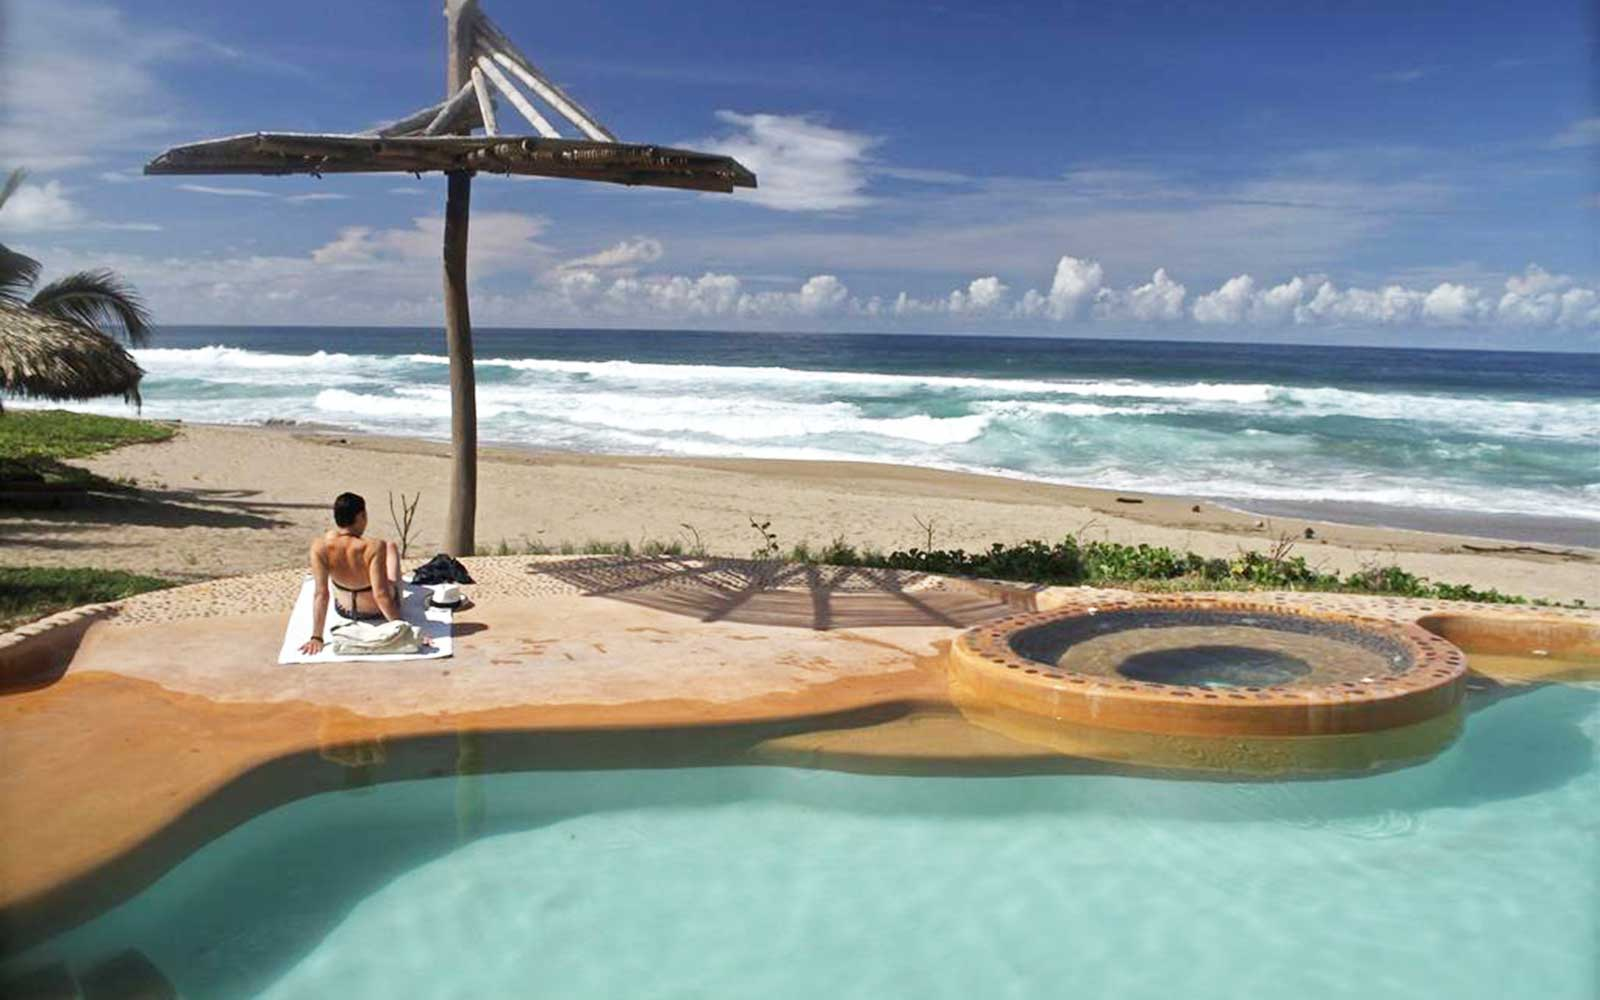 Mexico's Greenest Hotels Offer Guests a Certain 'Om'-biance: Playa Viva in Juluchuca, Guerrero